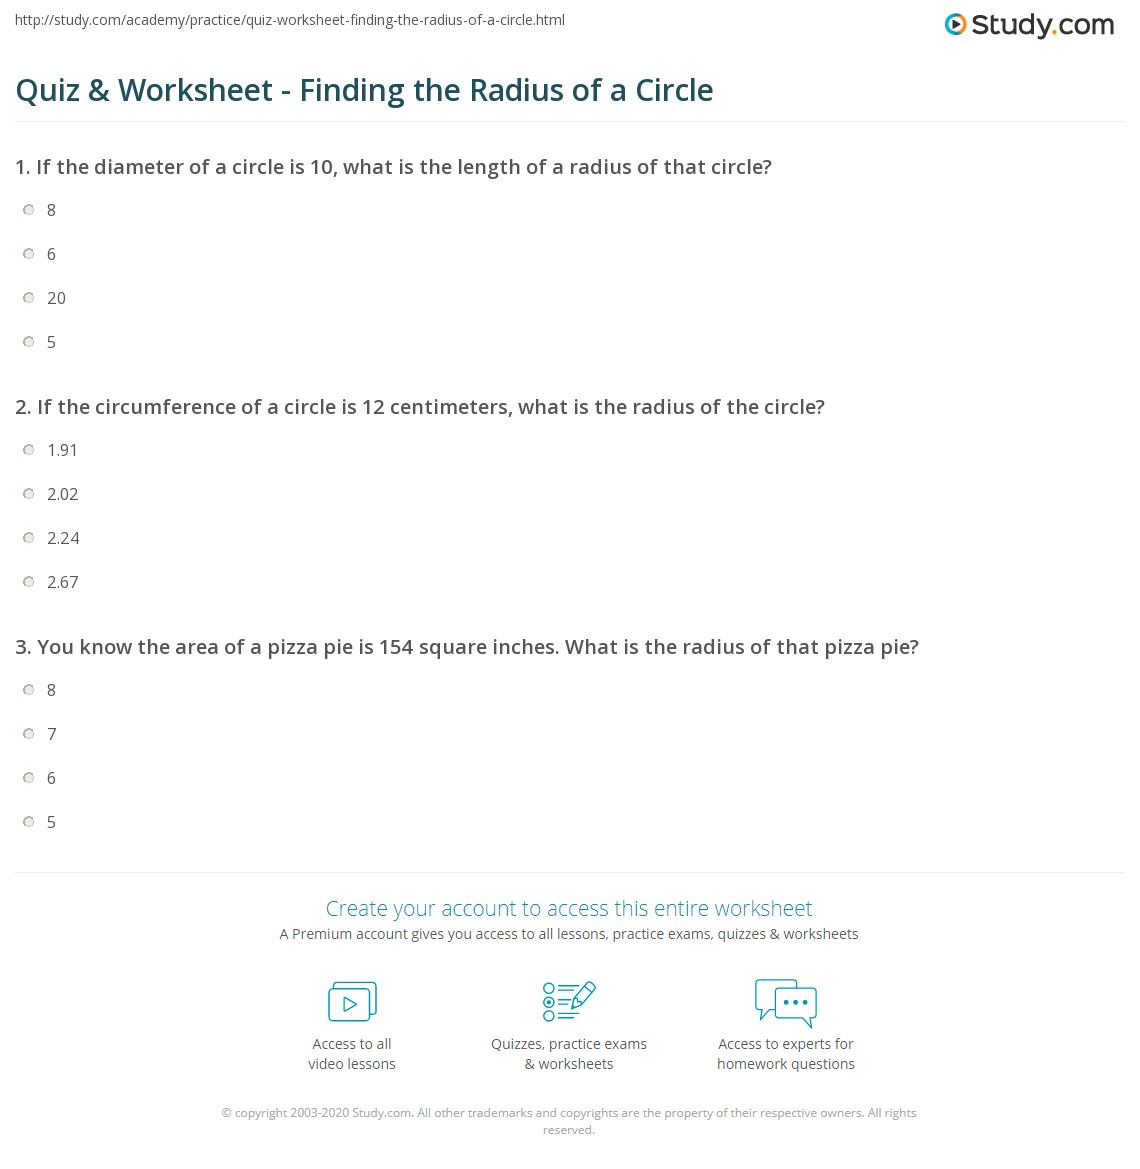 Quiz worksheet finding the radius of a circle study print how to find the radius of a circle definition formula worksheet ccuart Images